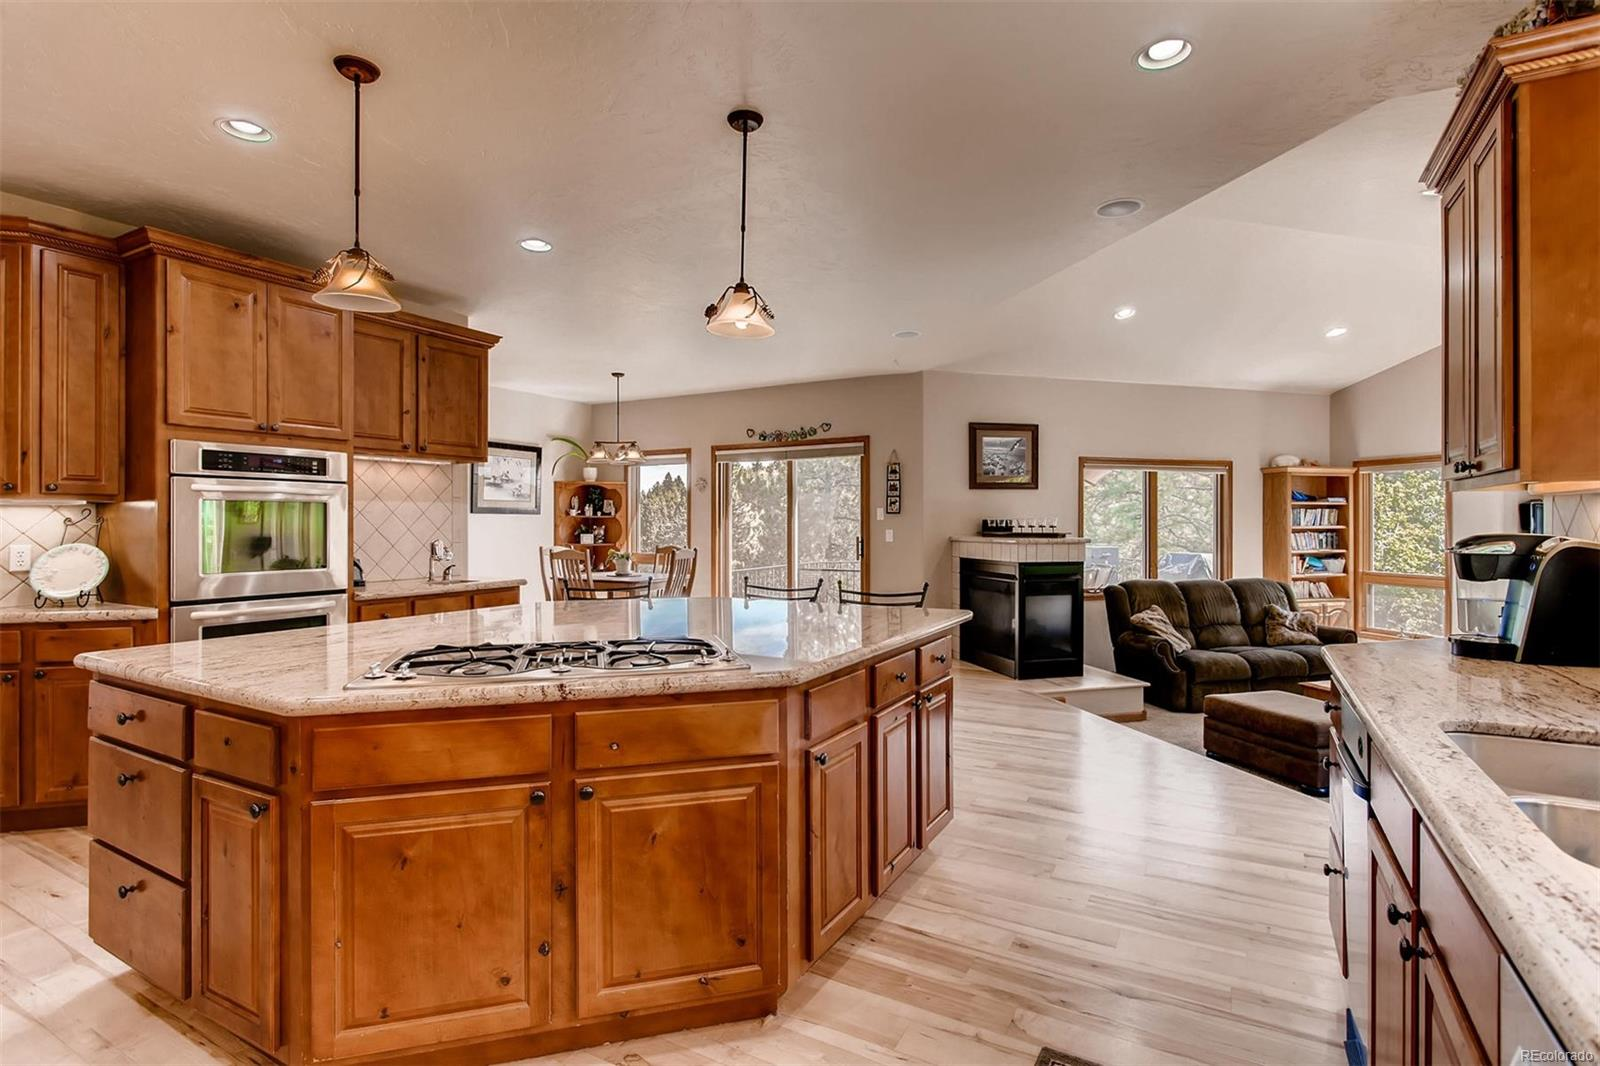 You'll relish the beautiful cabinetry and counter tops and immediately see how w